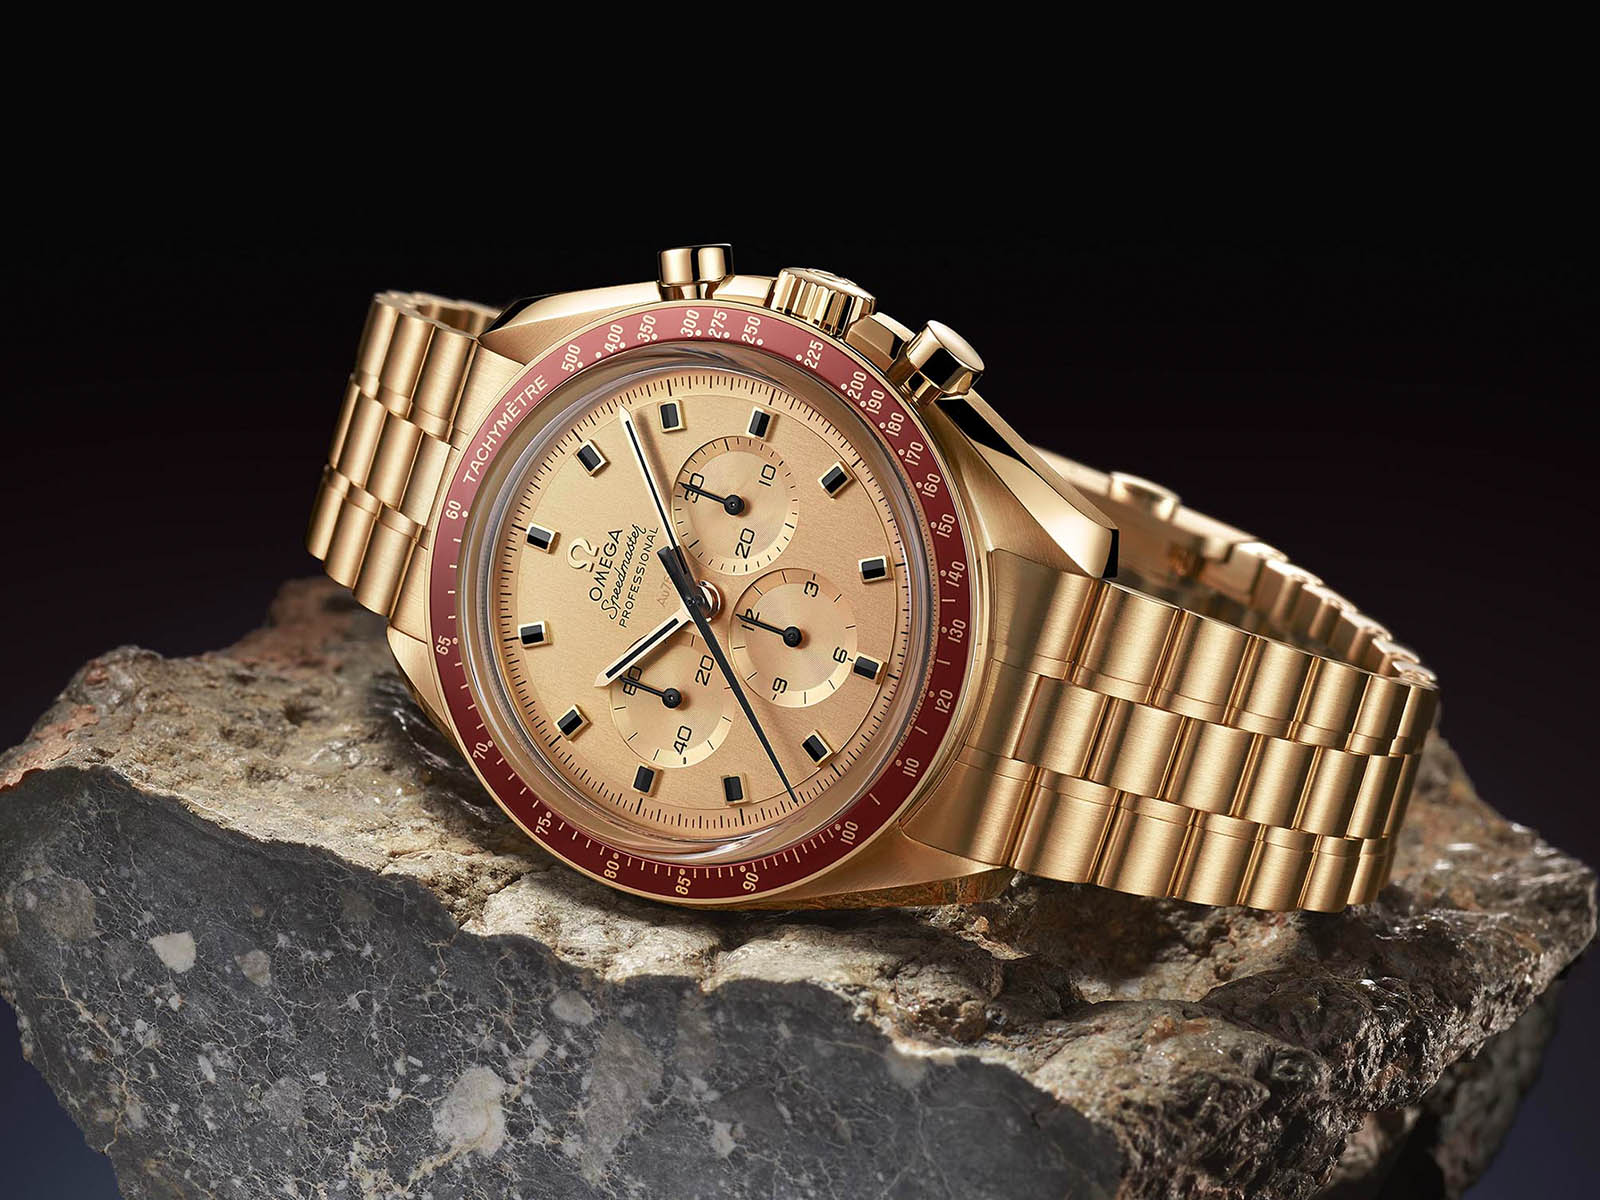 310-60-42-50-99-001-omega-speedmaster-apollo-11-50th-anniversary-8.jpg